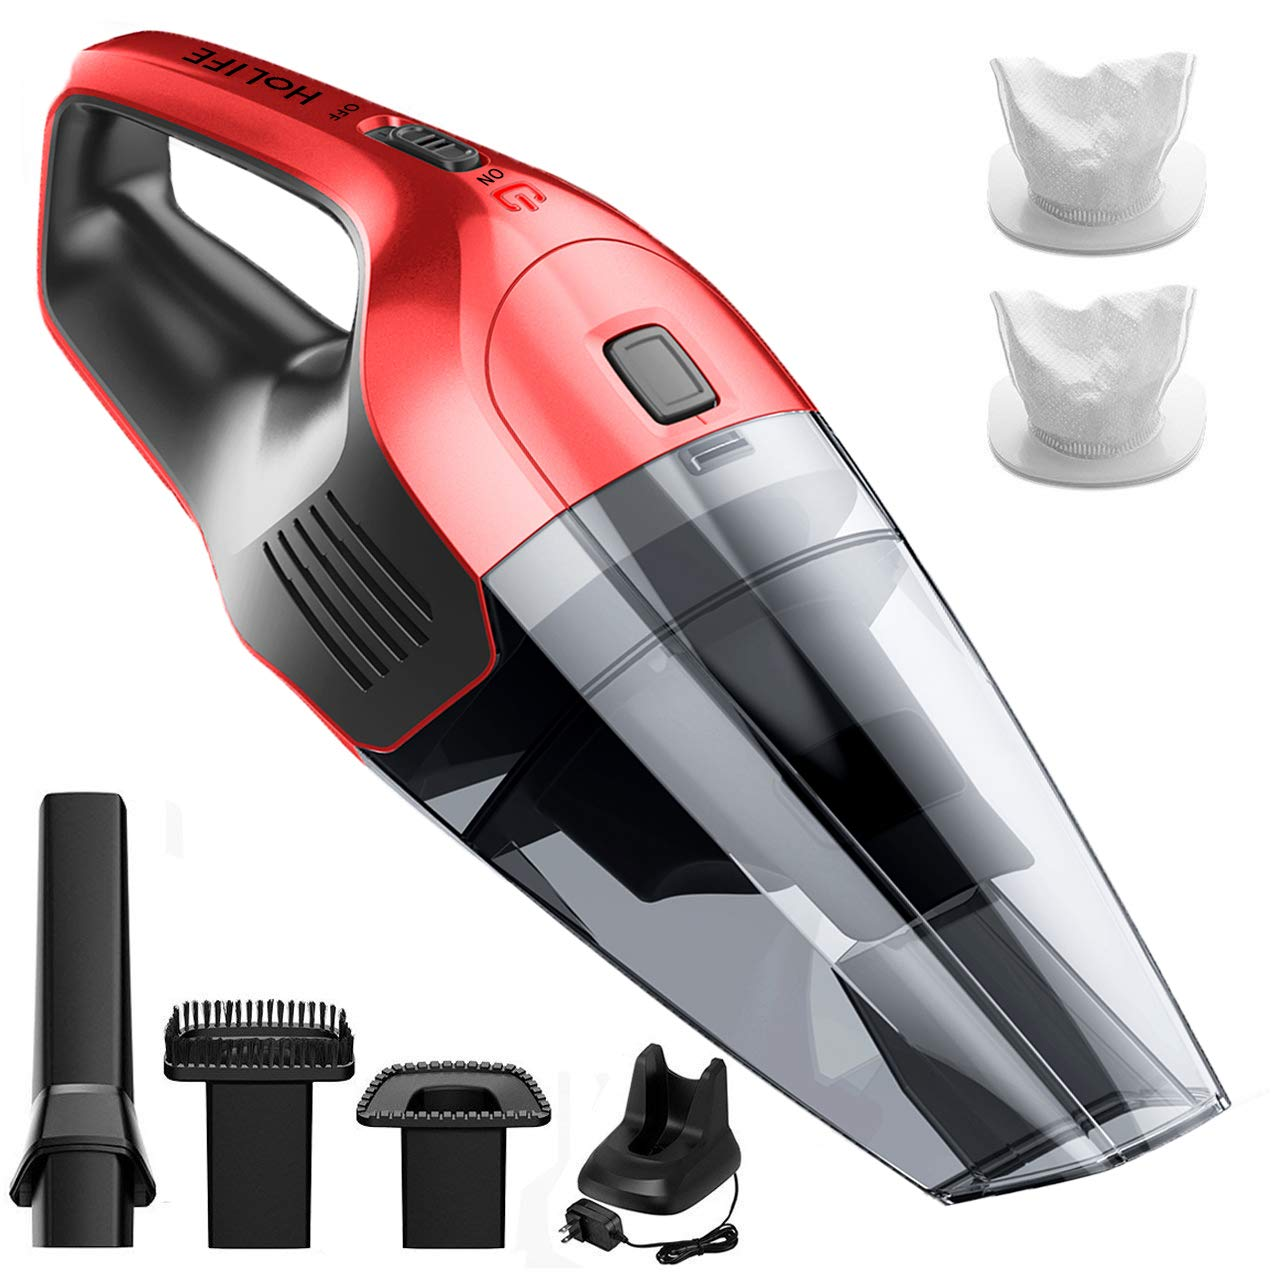 Holife Handheld Vacuum Cleaner with 6Kpa Wet Dry Hand Vac 14.8V Lithium with Fast Quick Charge Tech, Hand Vac Up to 30 Mins for Home Car Cleaning(Red)